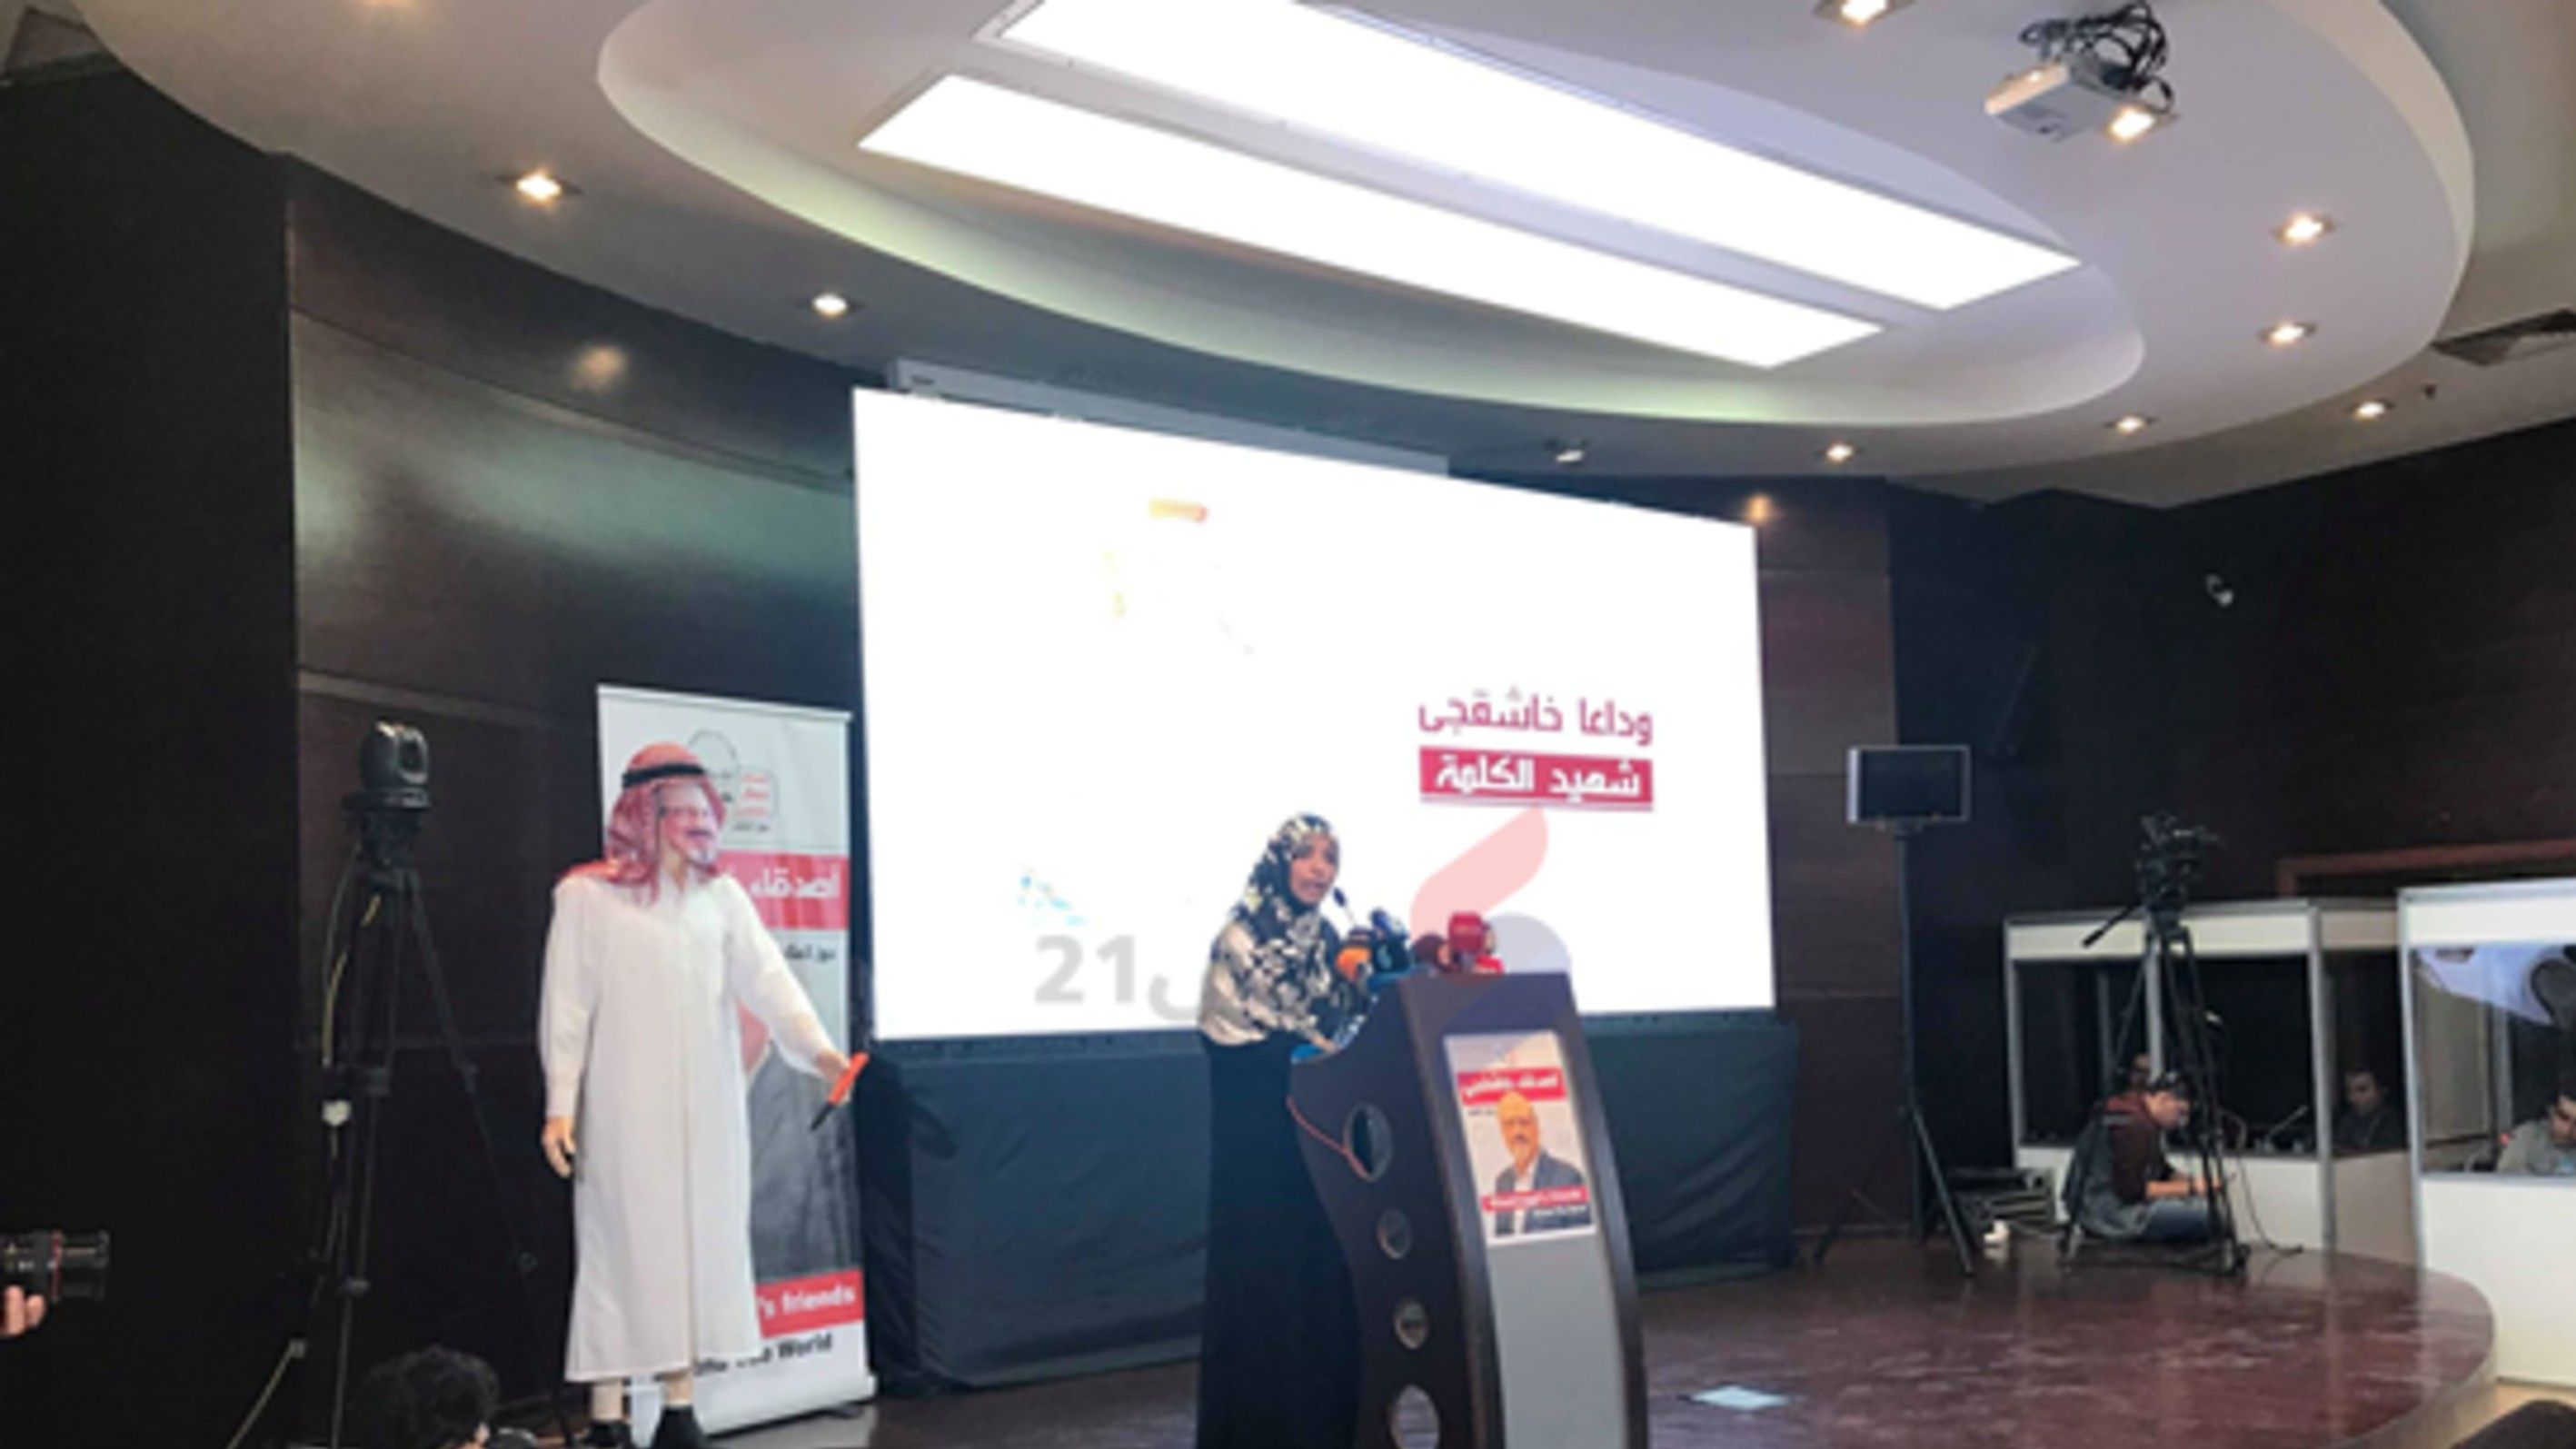 Speech by Mrs. Tawakkol Karman at Jamal Khashoggi's memorial service in Istanbul